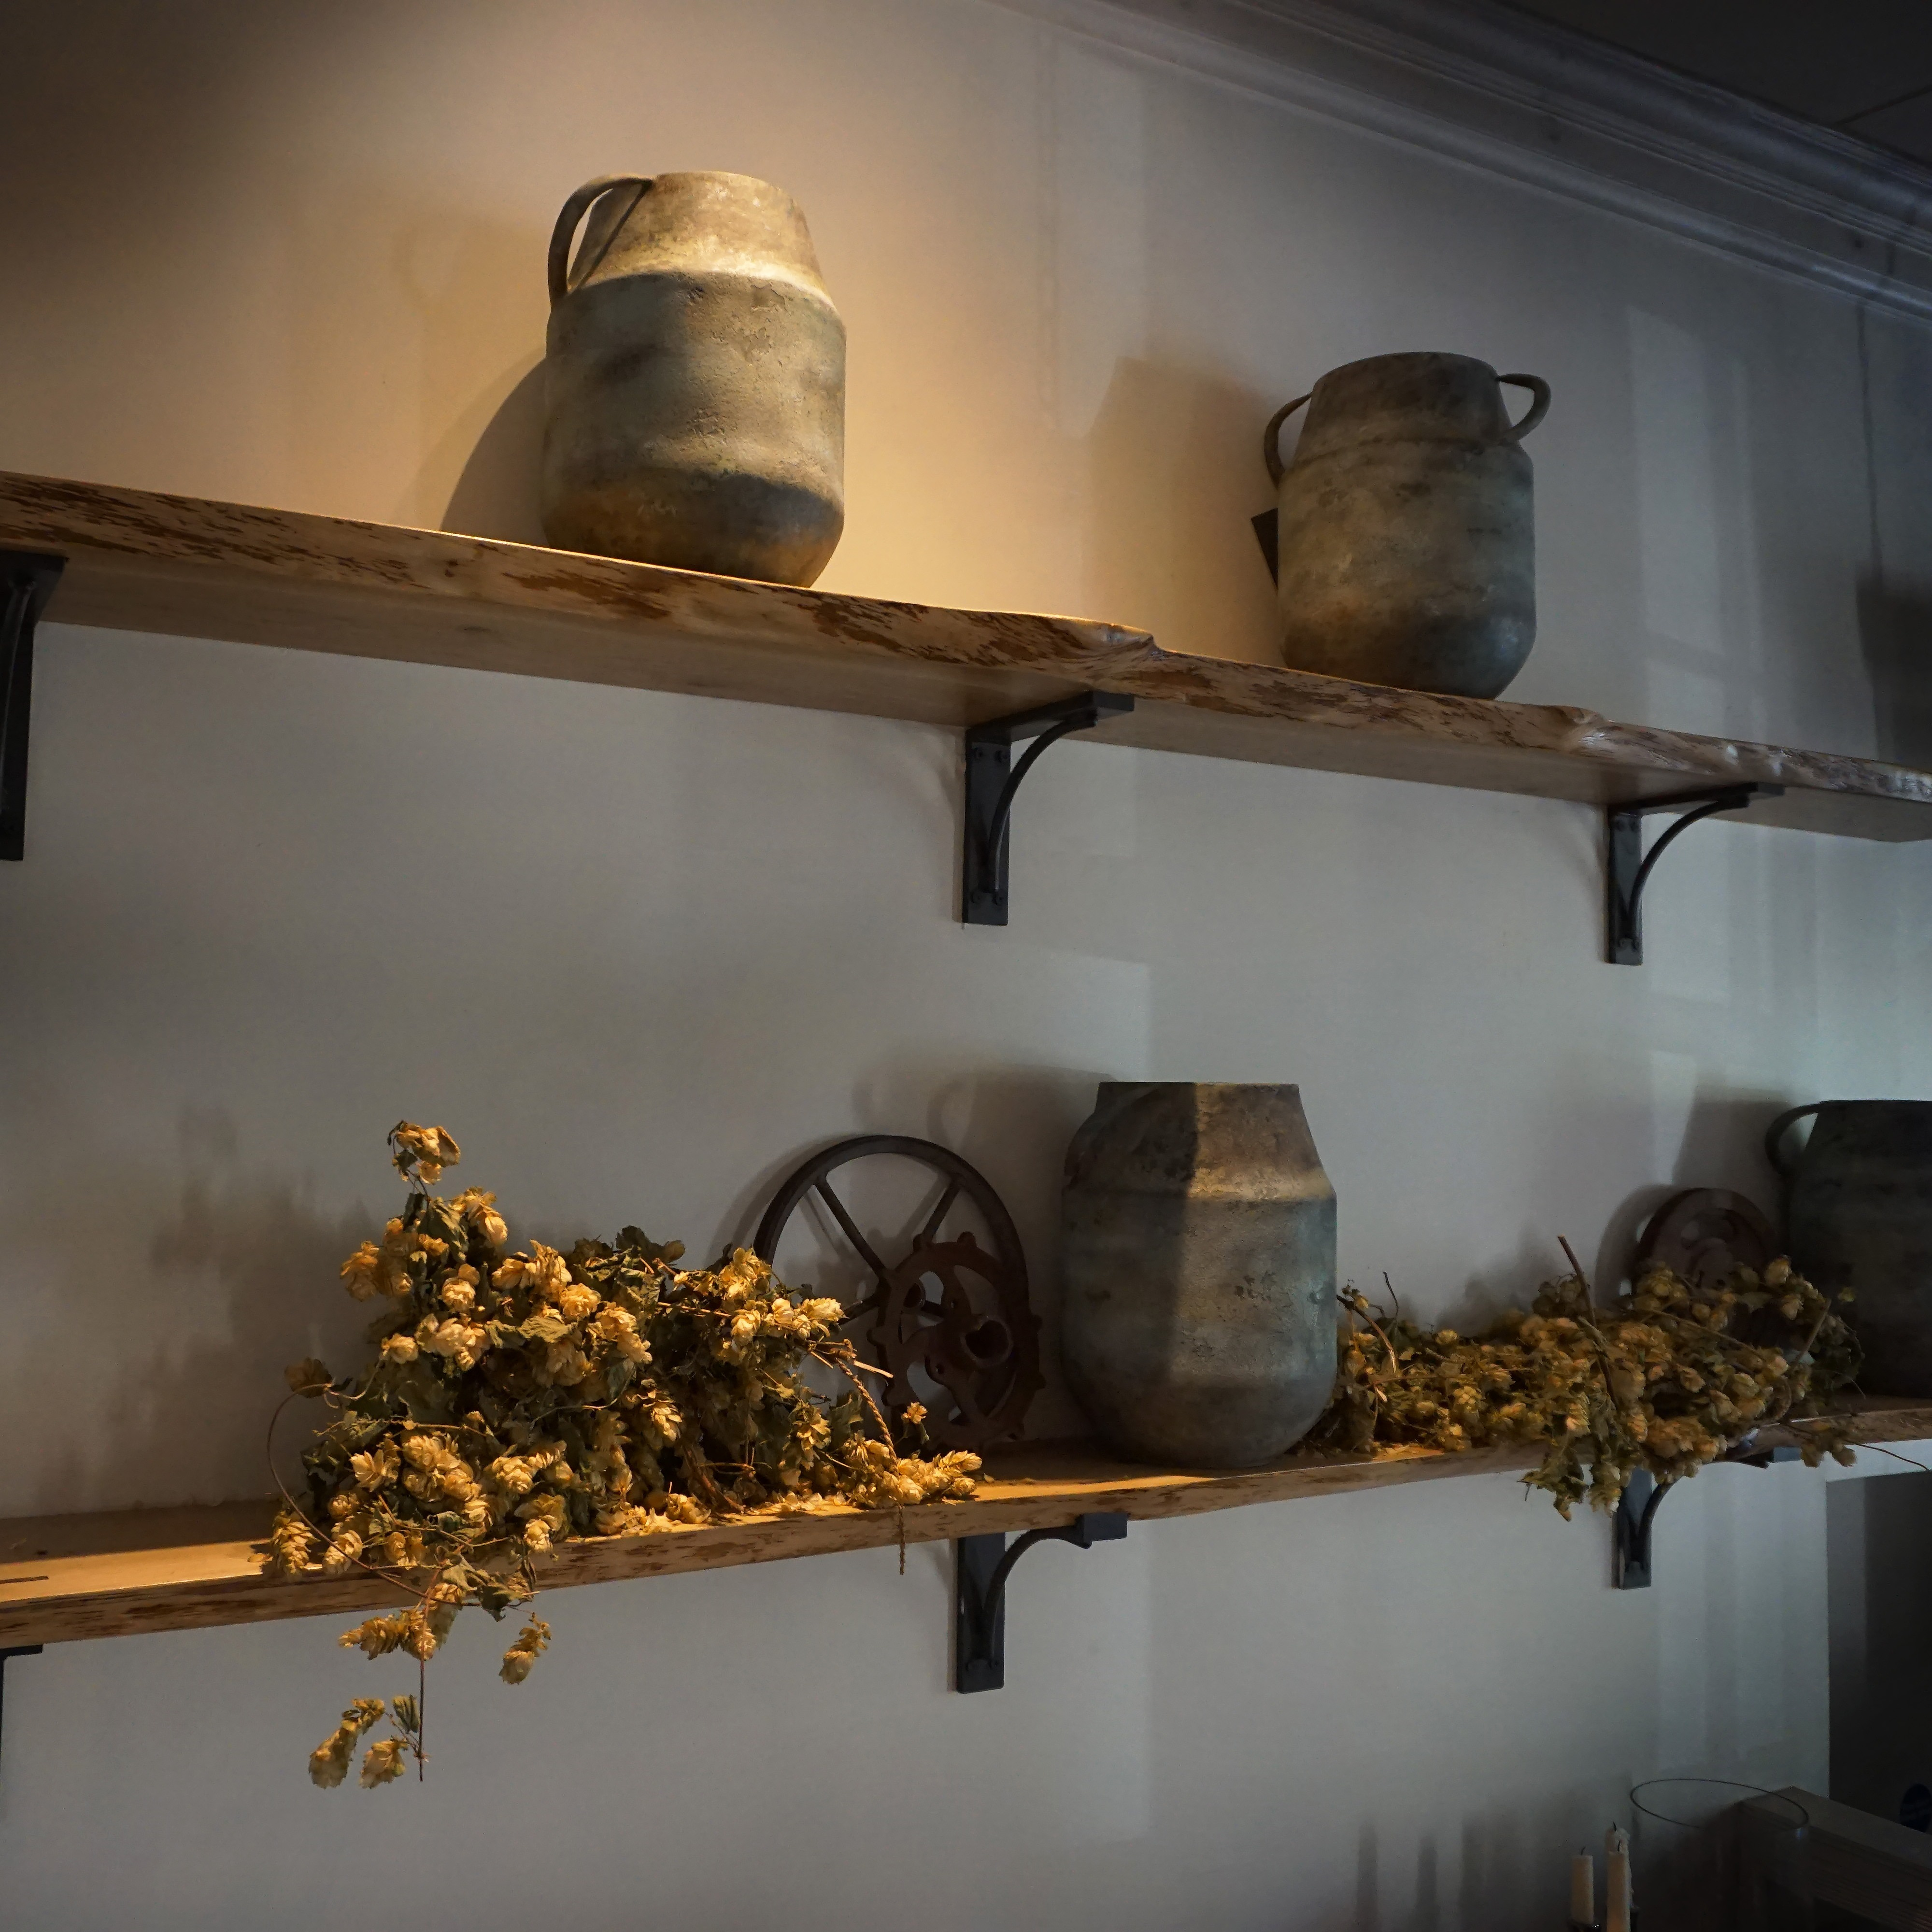 Beautiful bespoke live edged oak shelving with rustic decor